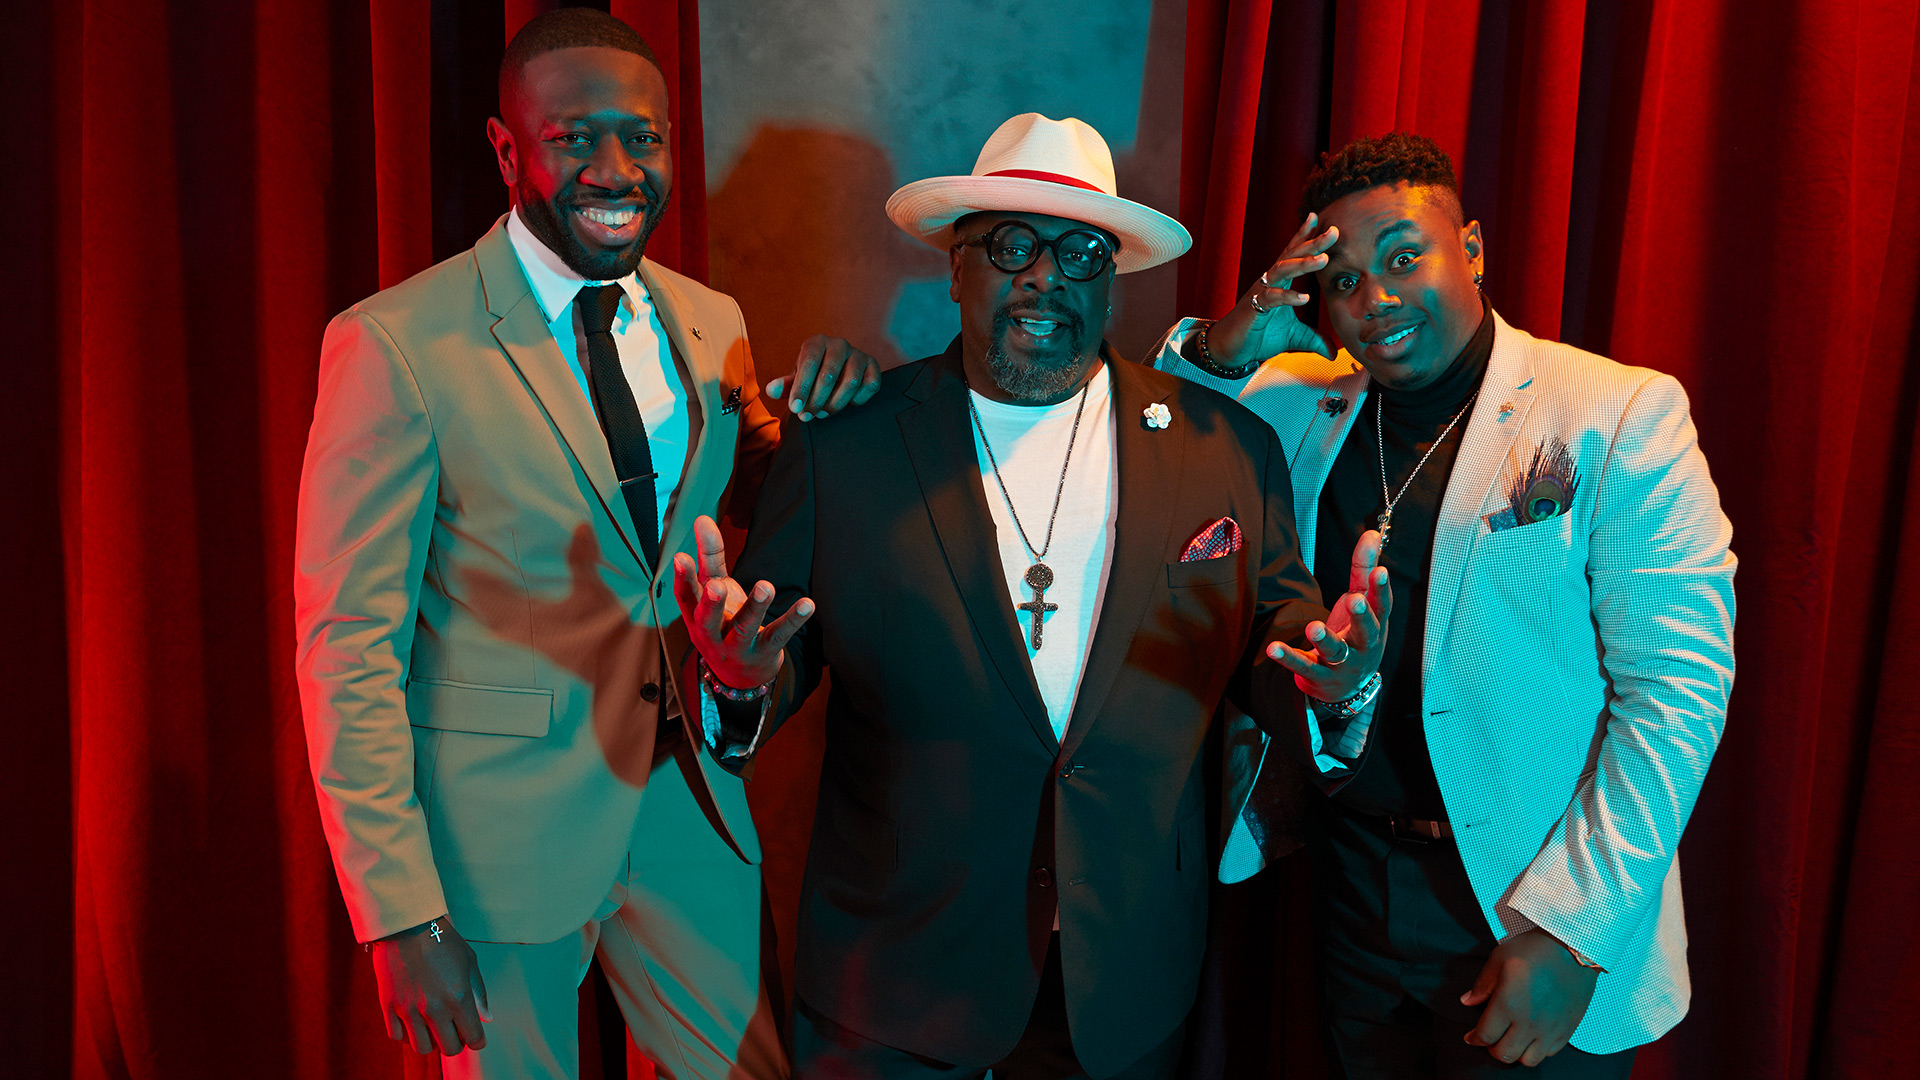 The Neighborhood: Sheaun McKinney, Cedric the Entertainer, and Marcel Spears